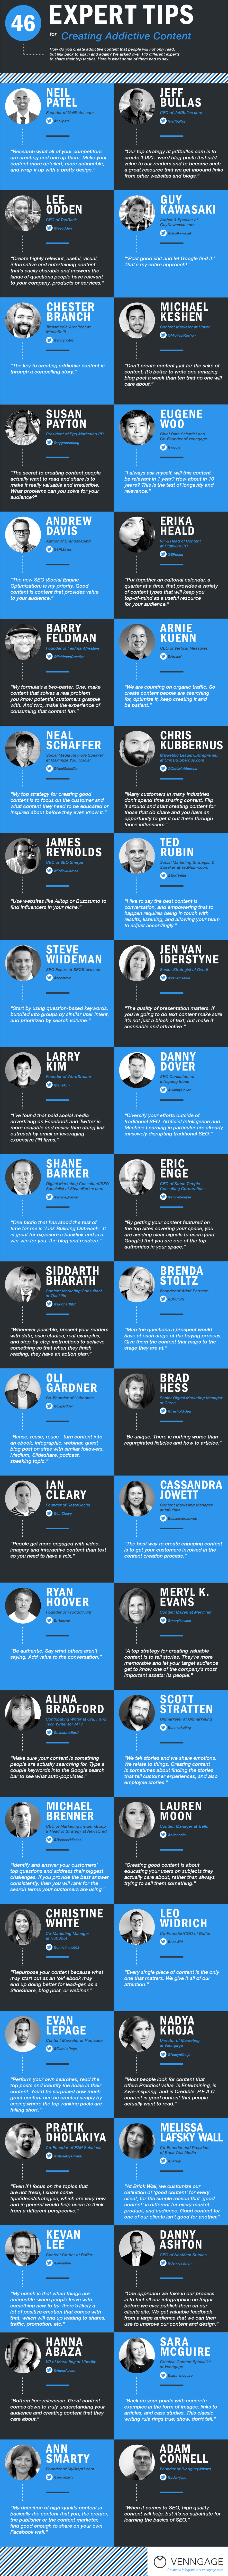 46 Expert Tips for Creating Fantastic, Addictive Content — The No